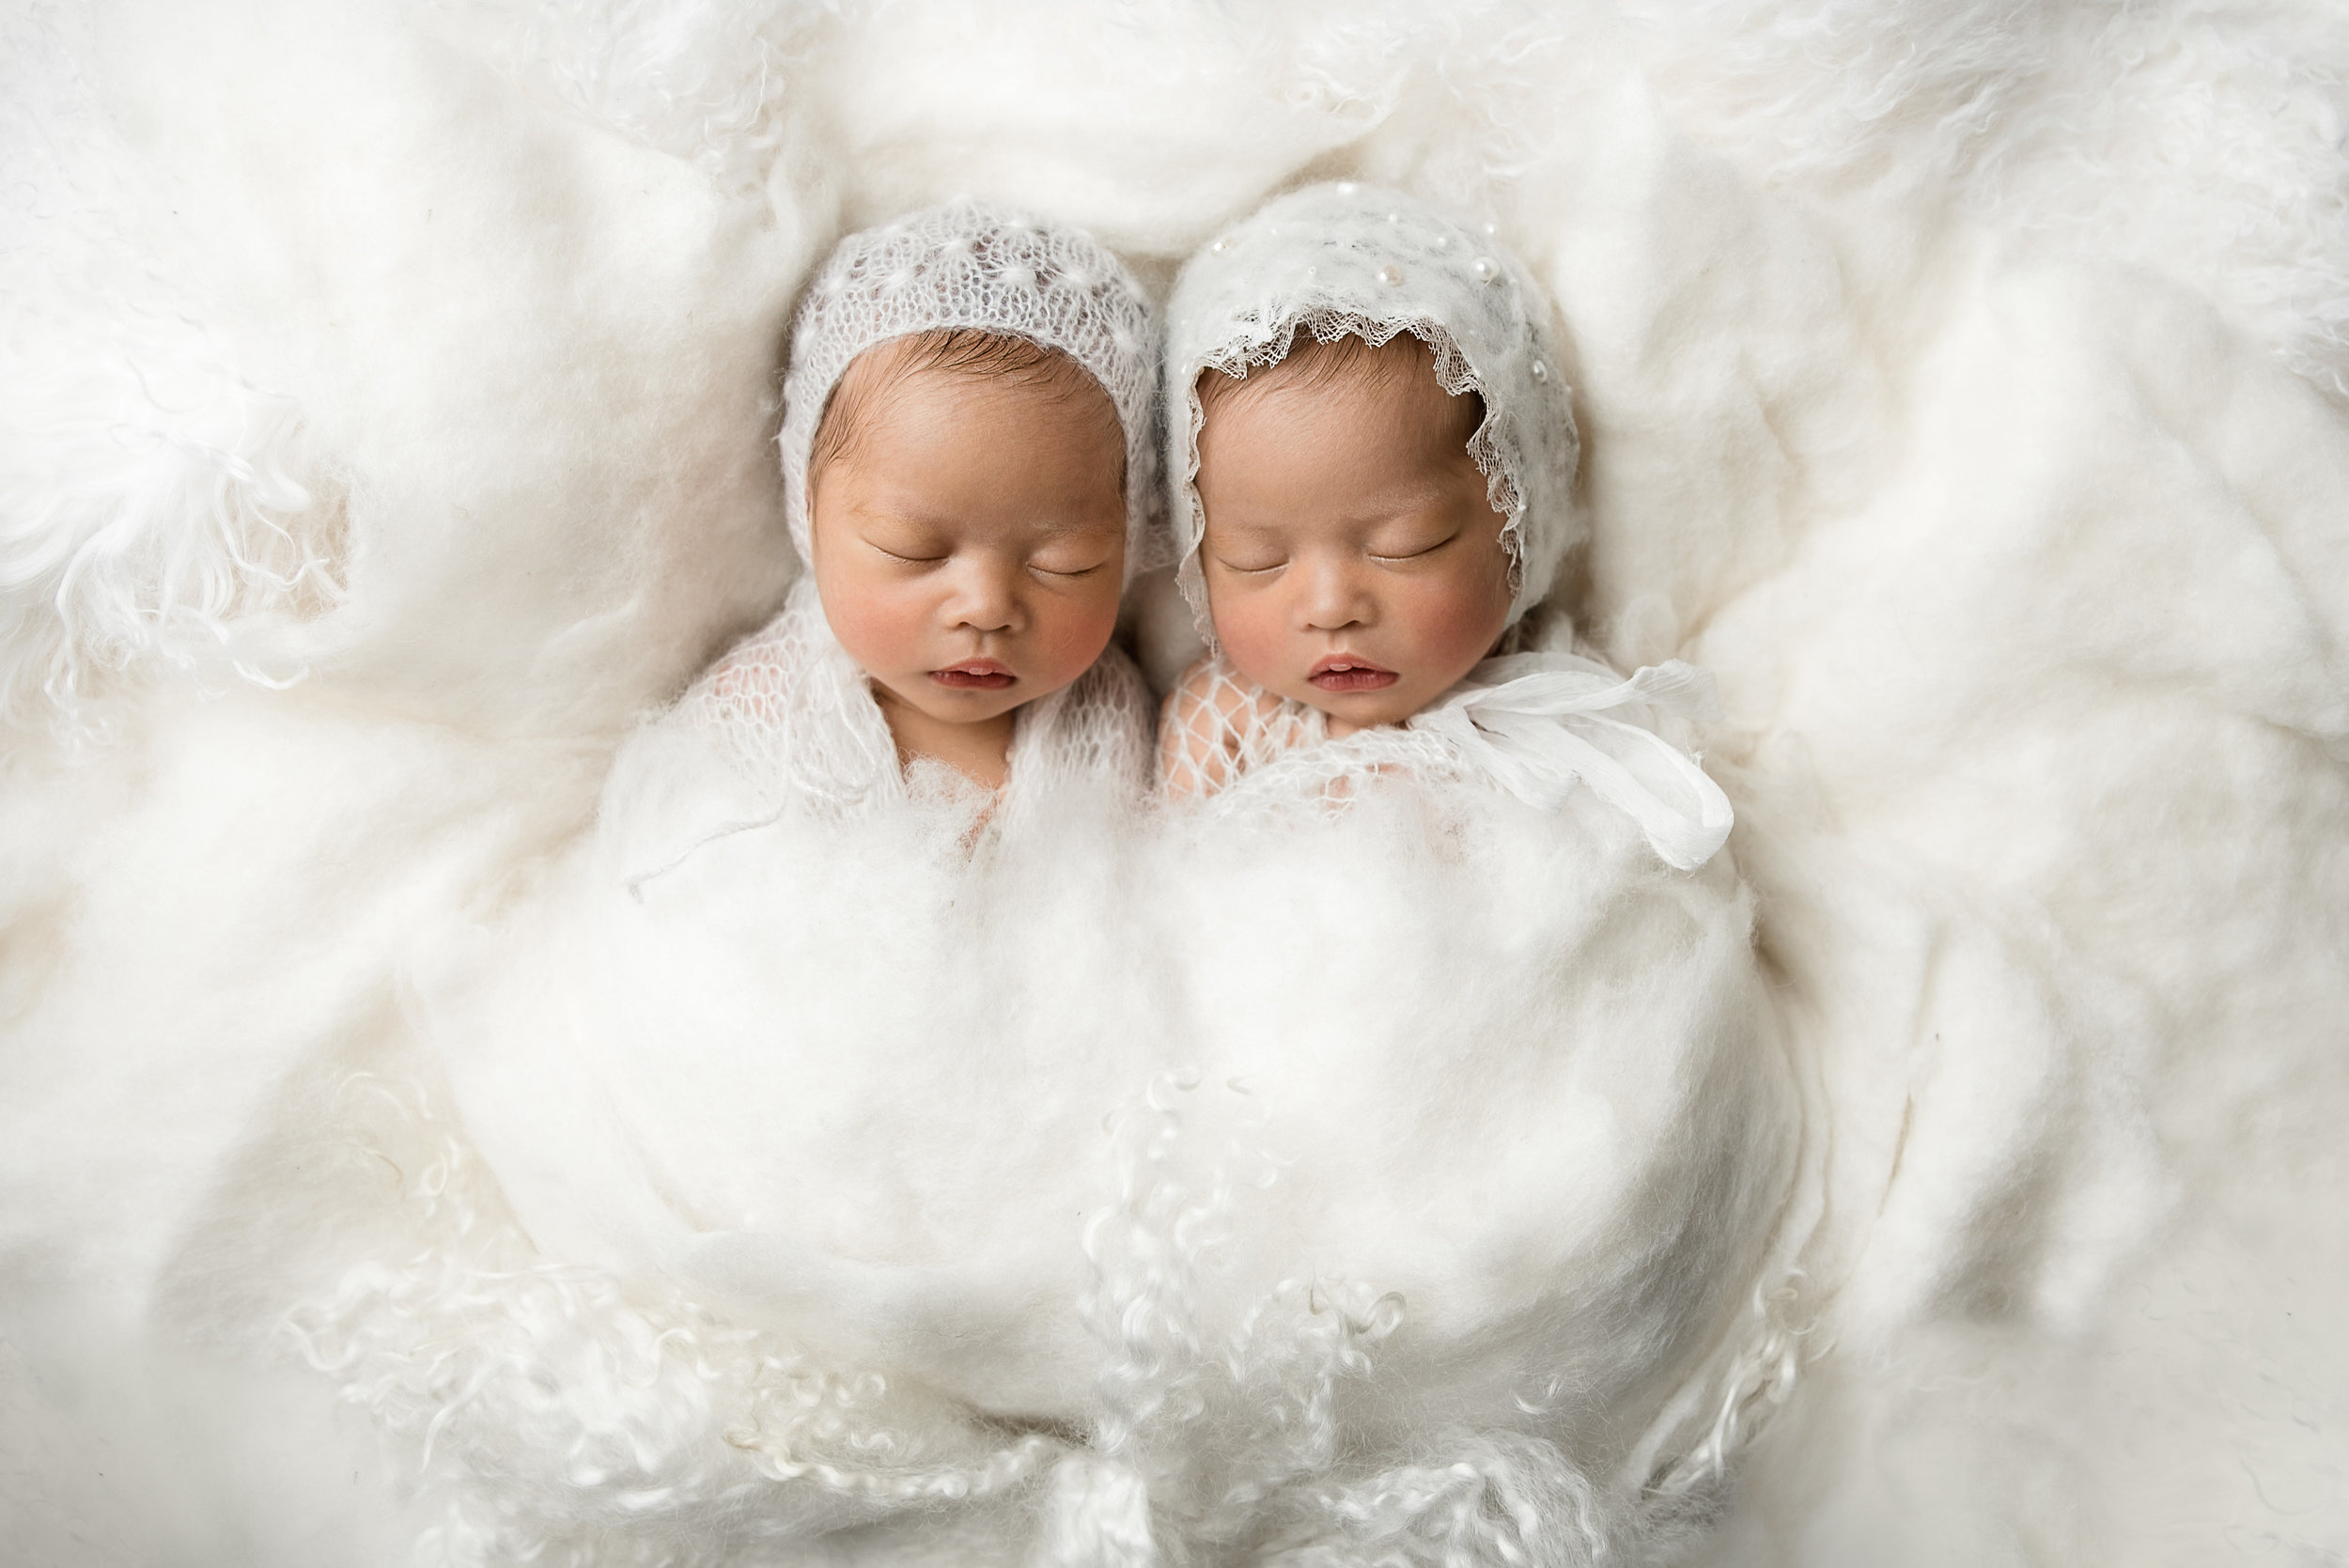 asian twins wrapped and snuggled together at junebug photography studio in manhattan, kansas